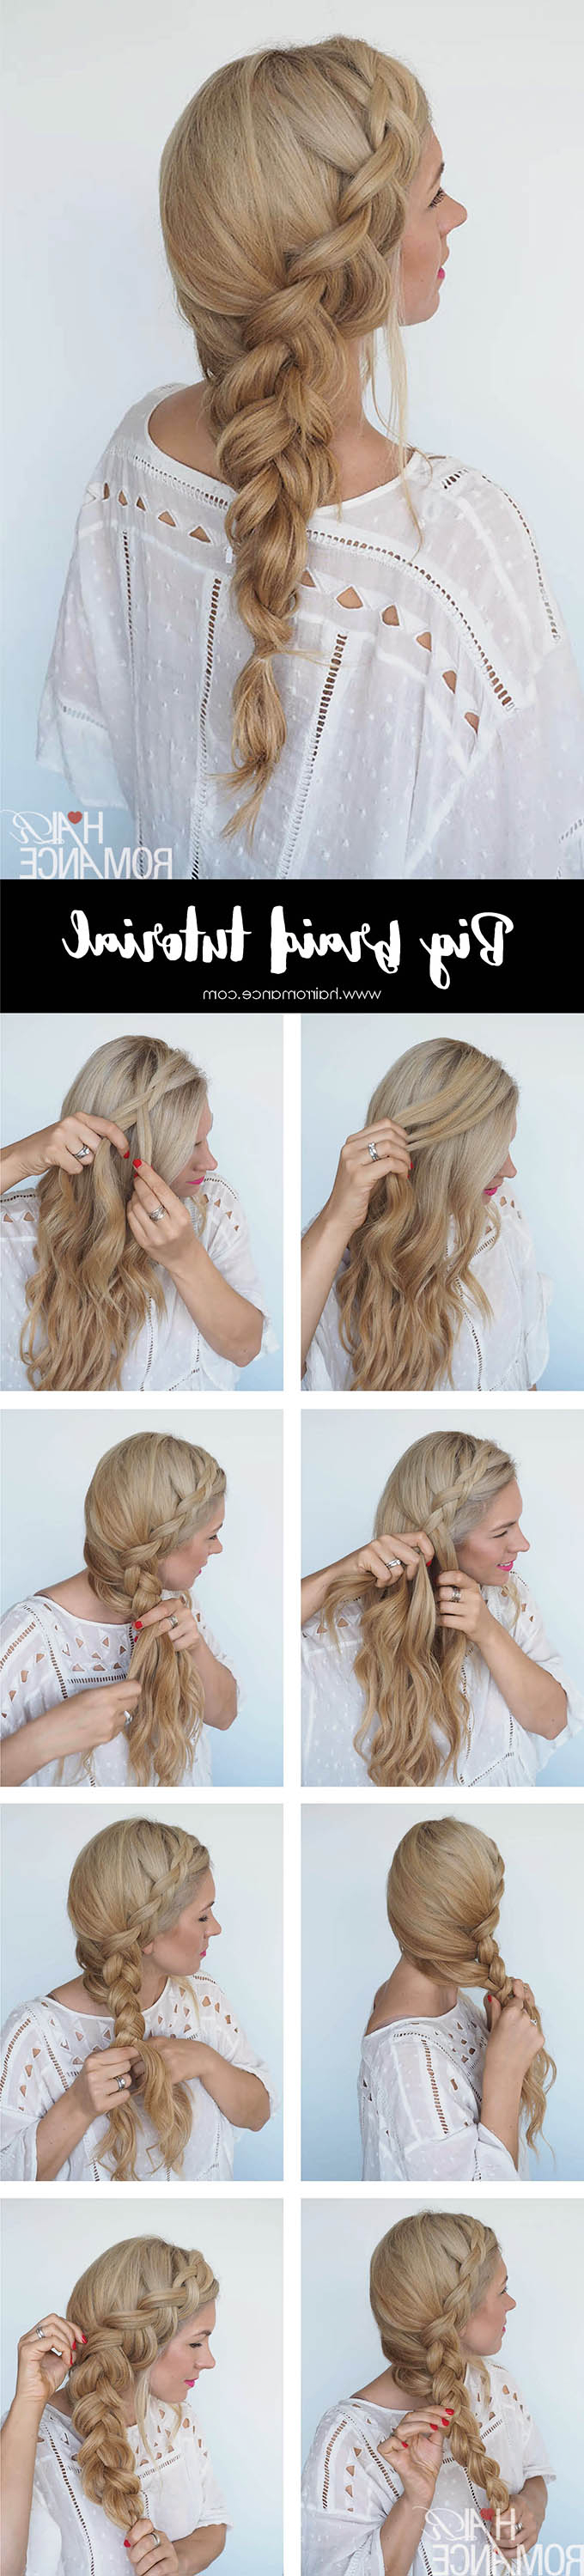 How To Style A Big Side Braid + Instant Mermaid Hair – Hair Inside Well Known Over The Shoulder Mermaid Braid Hairstyles (Gallery 3 of 20)